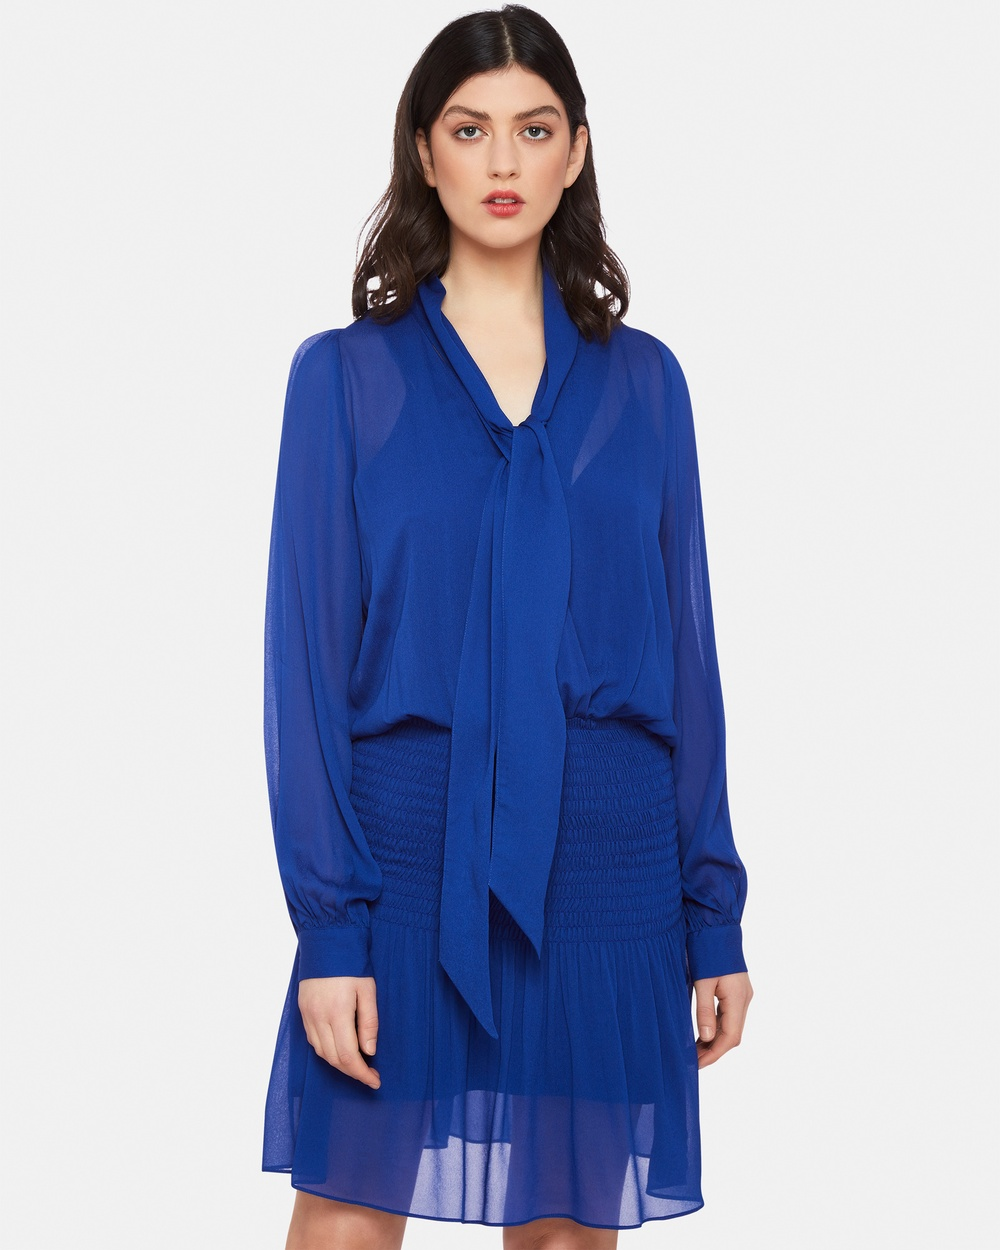 Oxford COSTA GEORGETTE DRESS Dresses Blue COSTA GEORGETTE DRESS